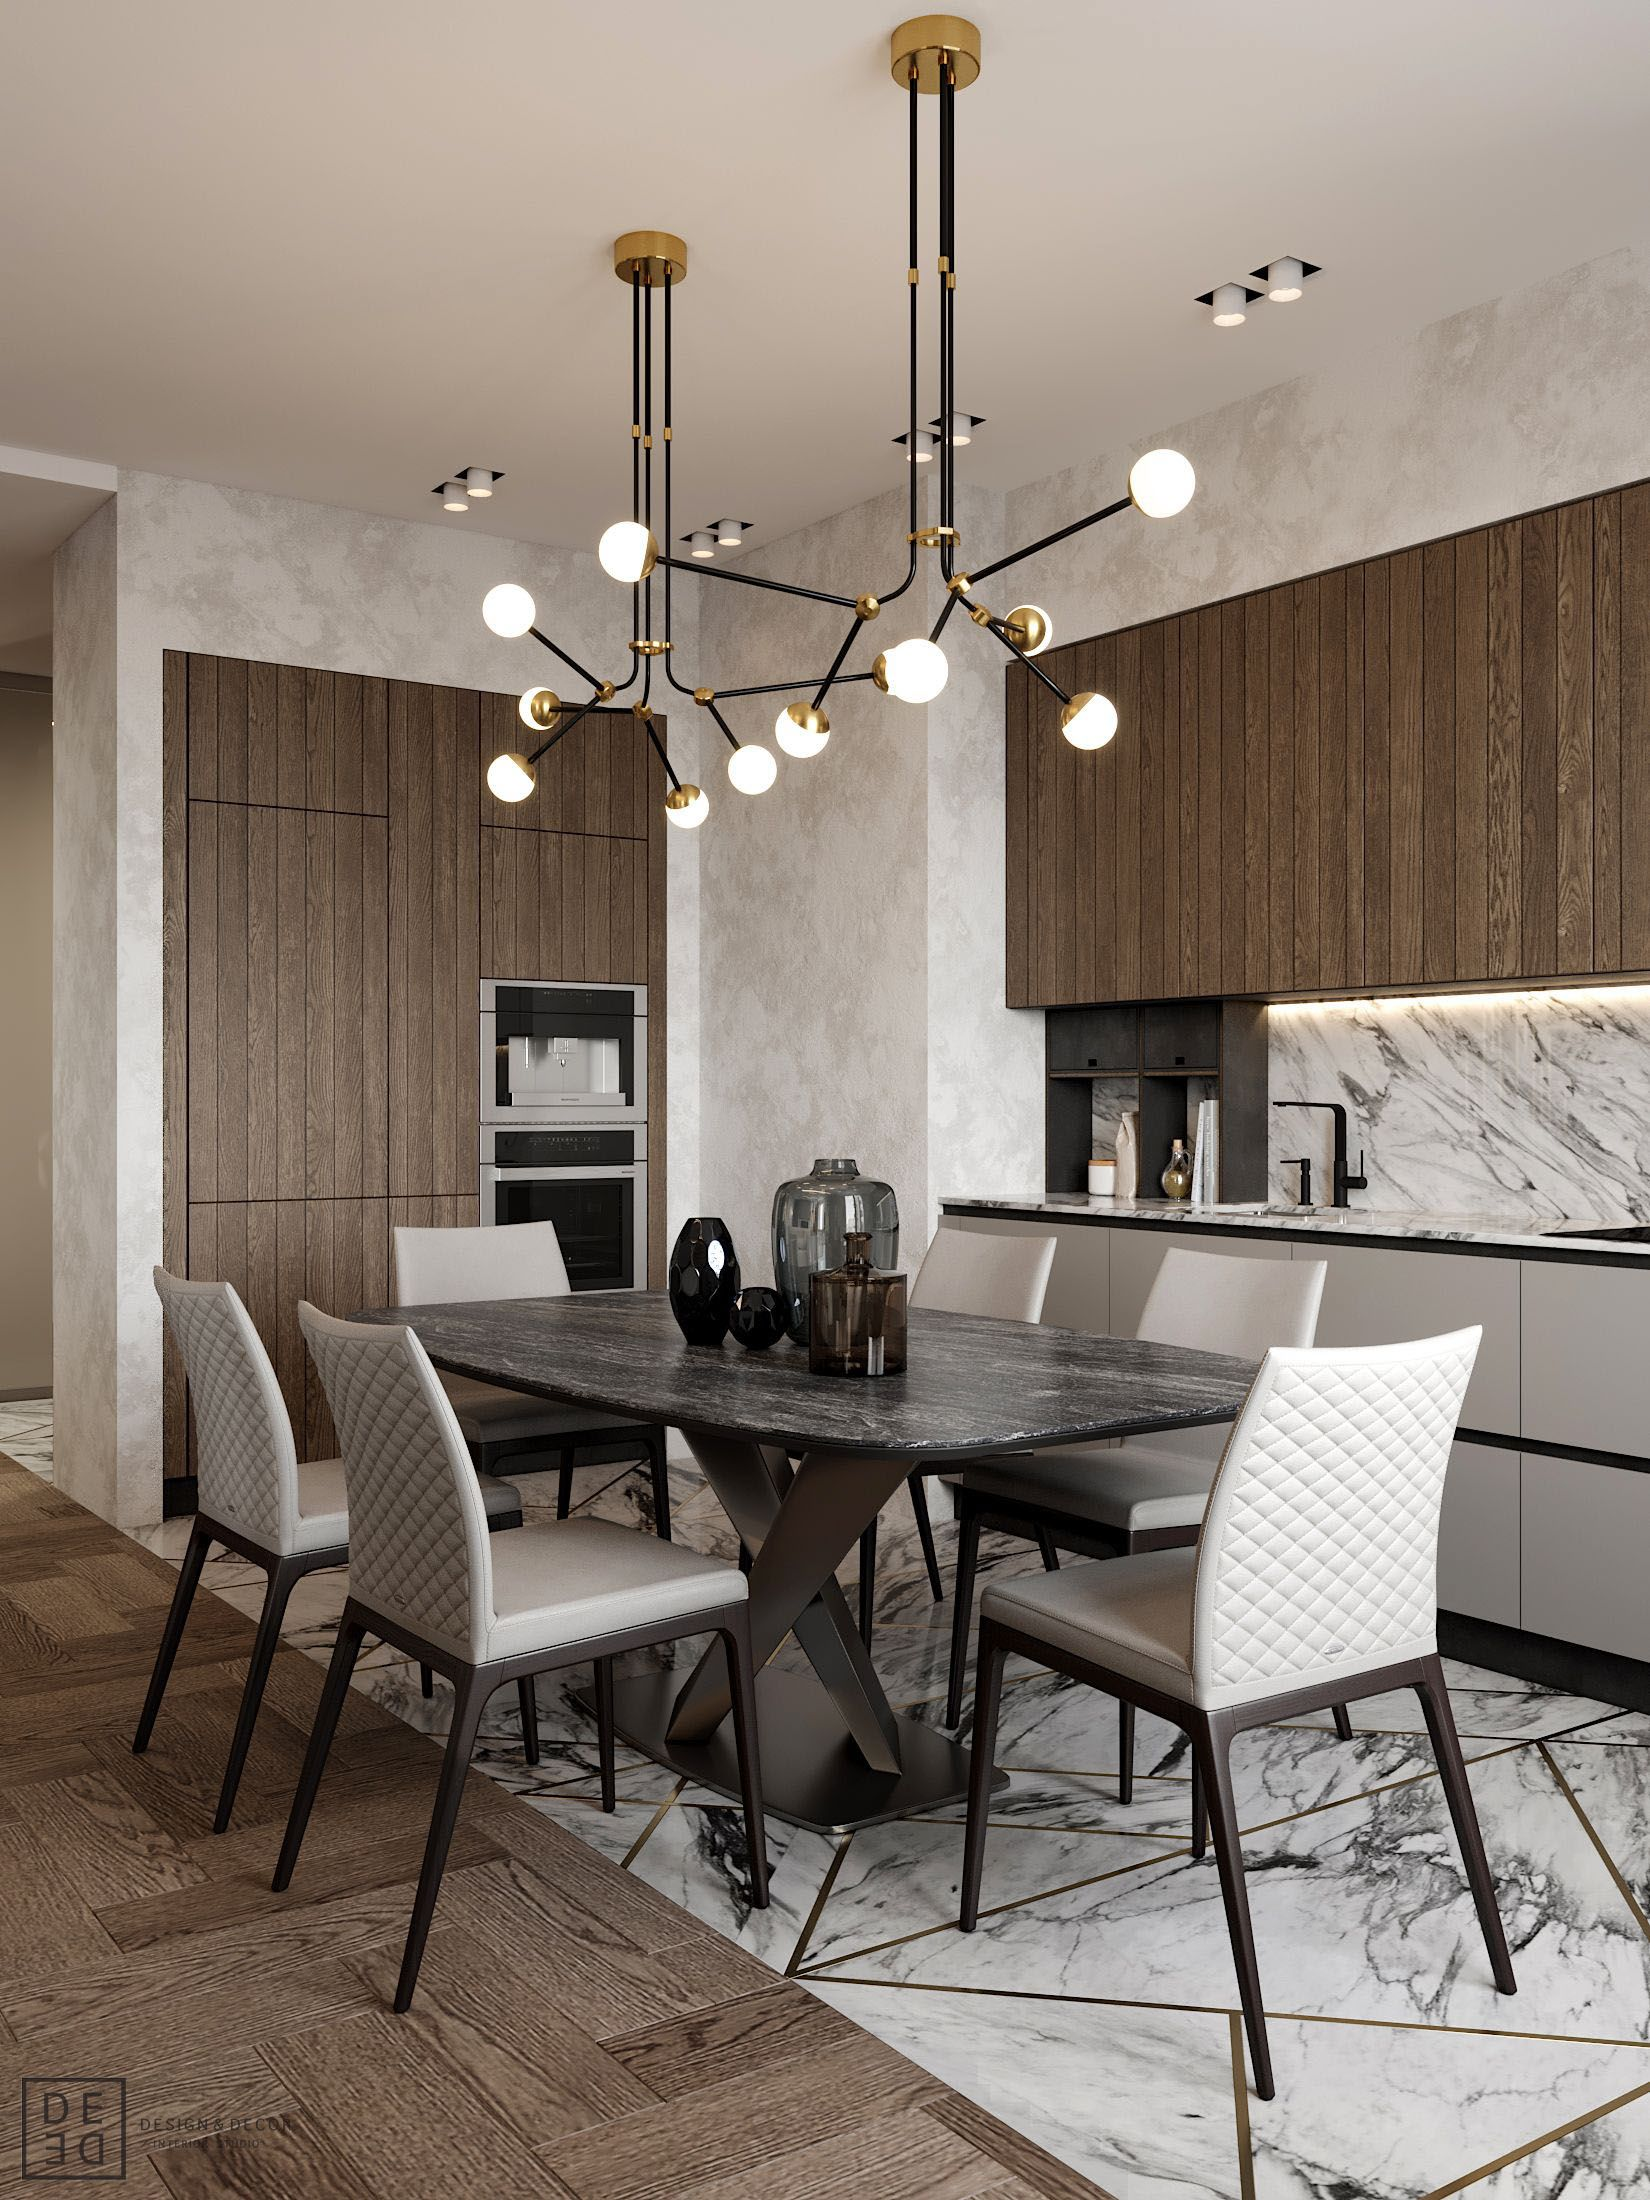 De De Interior With Sophisticated Nature On Behance Interior Design Dining Room Dining Room Interiors Dining Room Contemporary